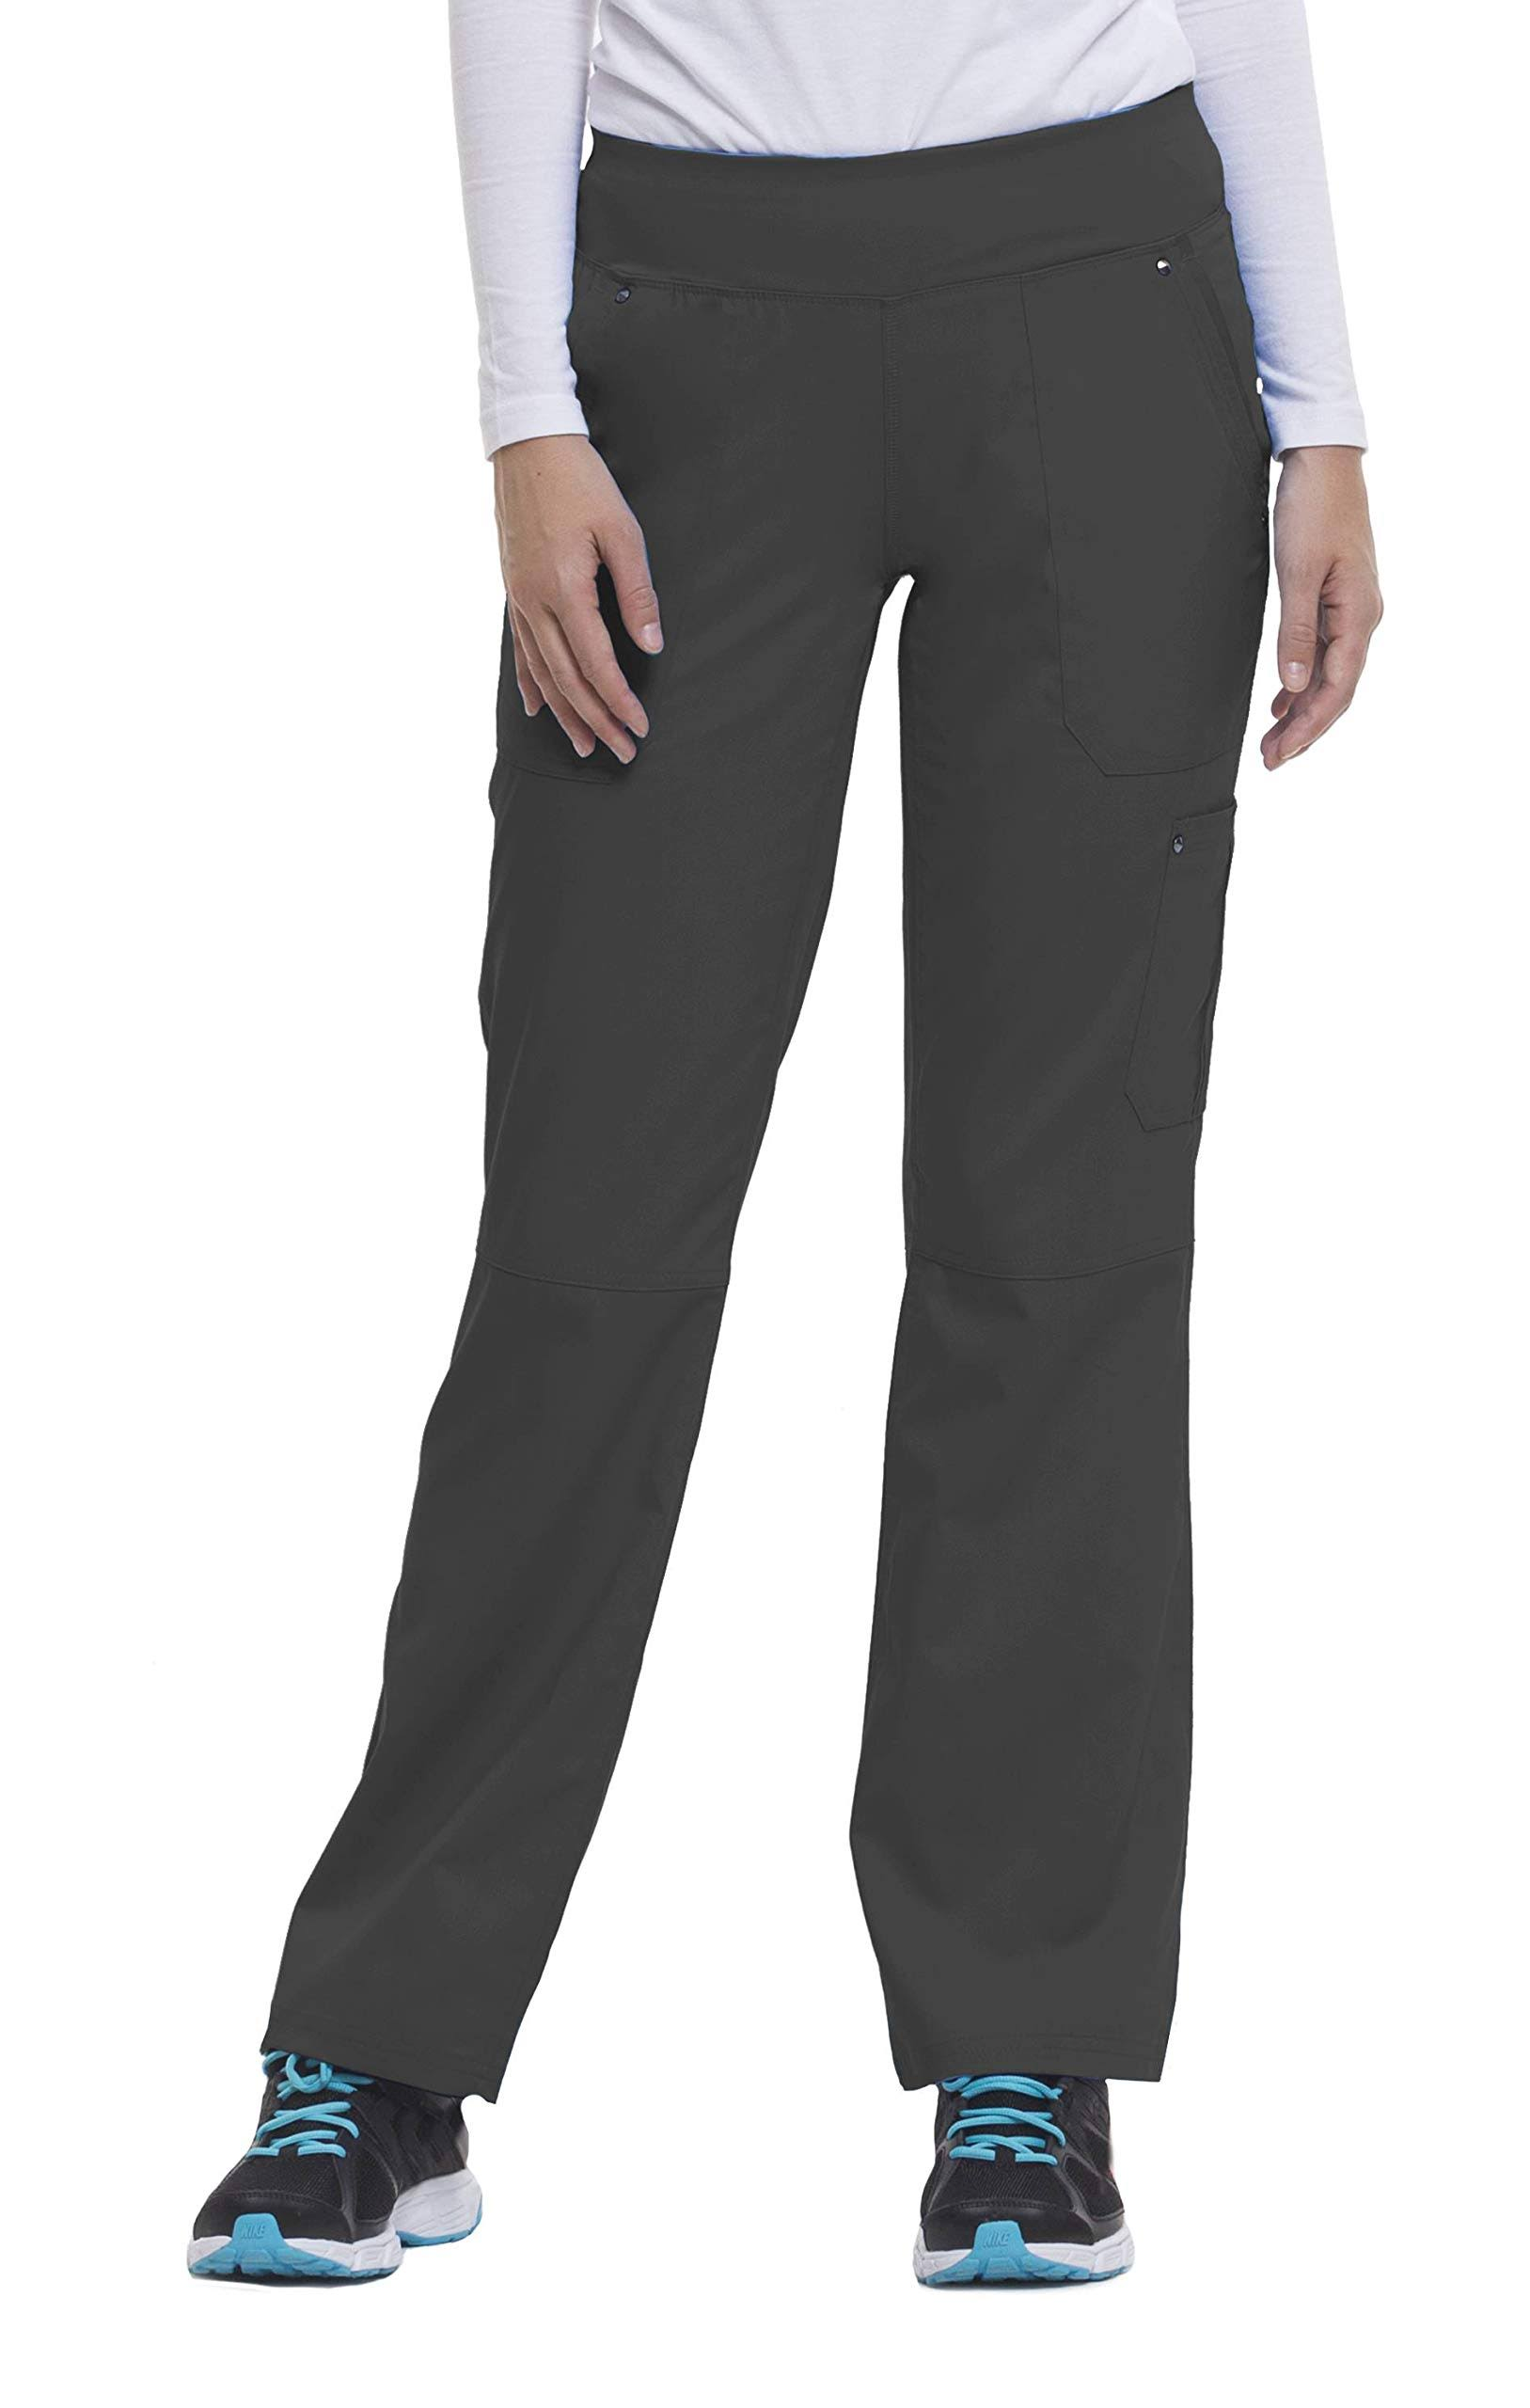 Healing Hands Purple Label 9133 Tori Scrub Pant